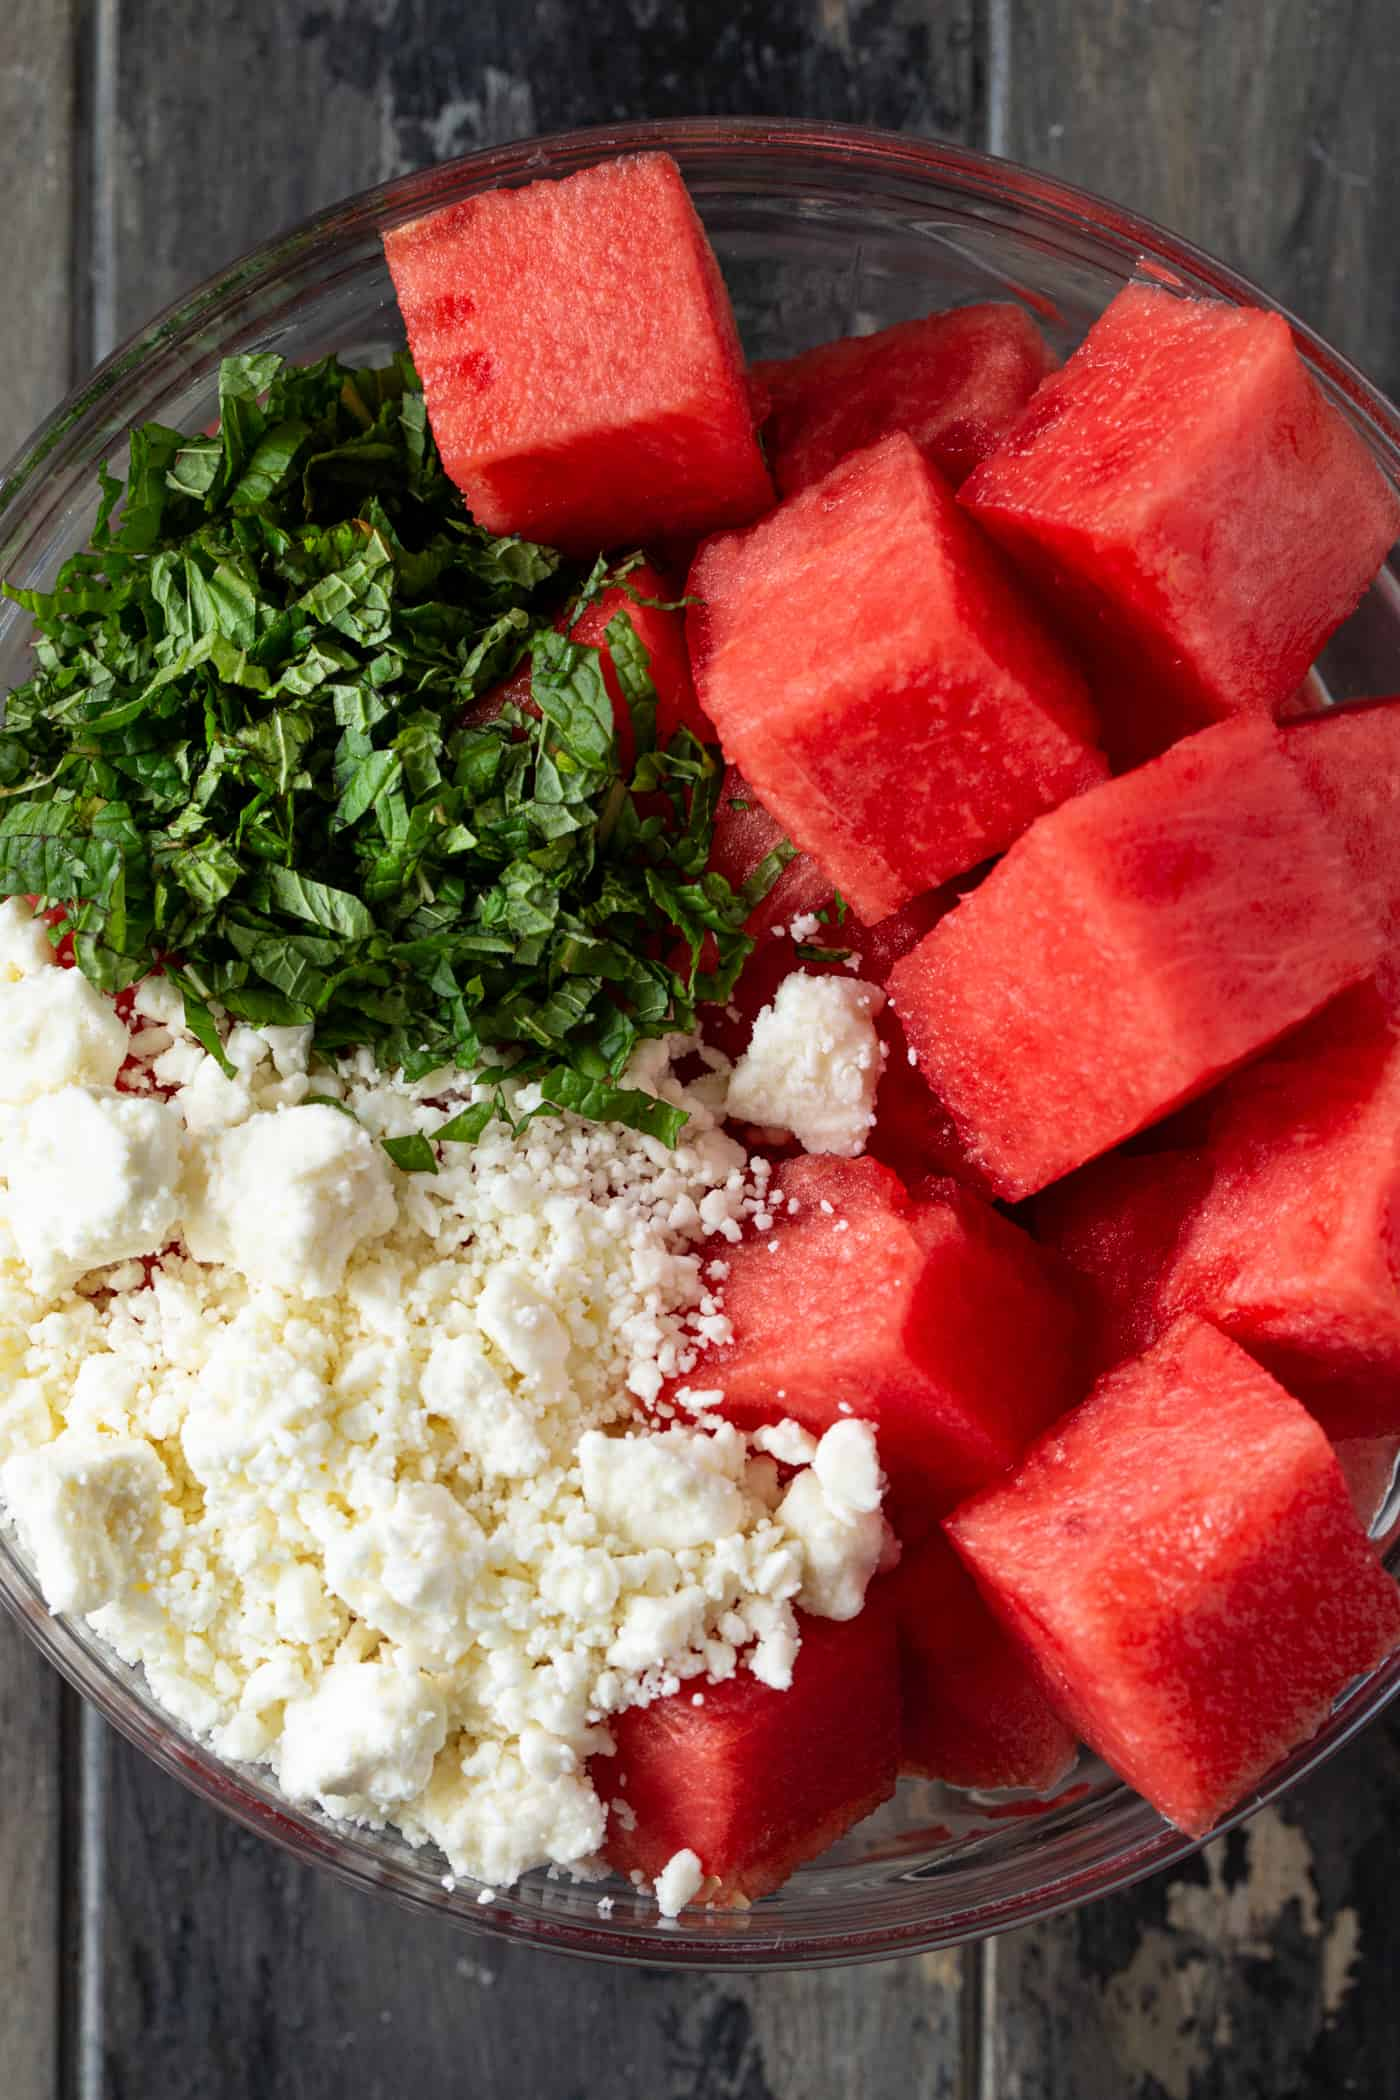 Fresh watermelon cubes, crumbled feta cheese and chopped mint leaves in a glass bowl.